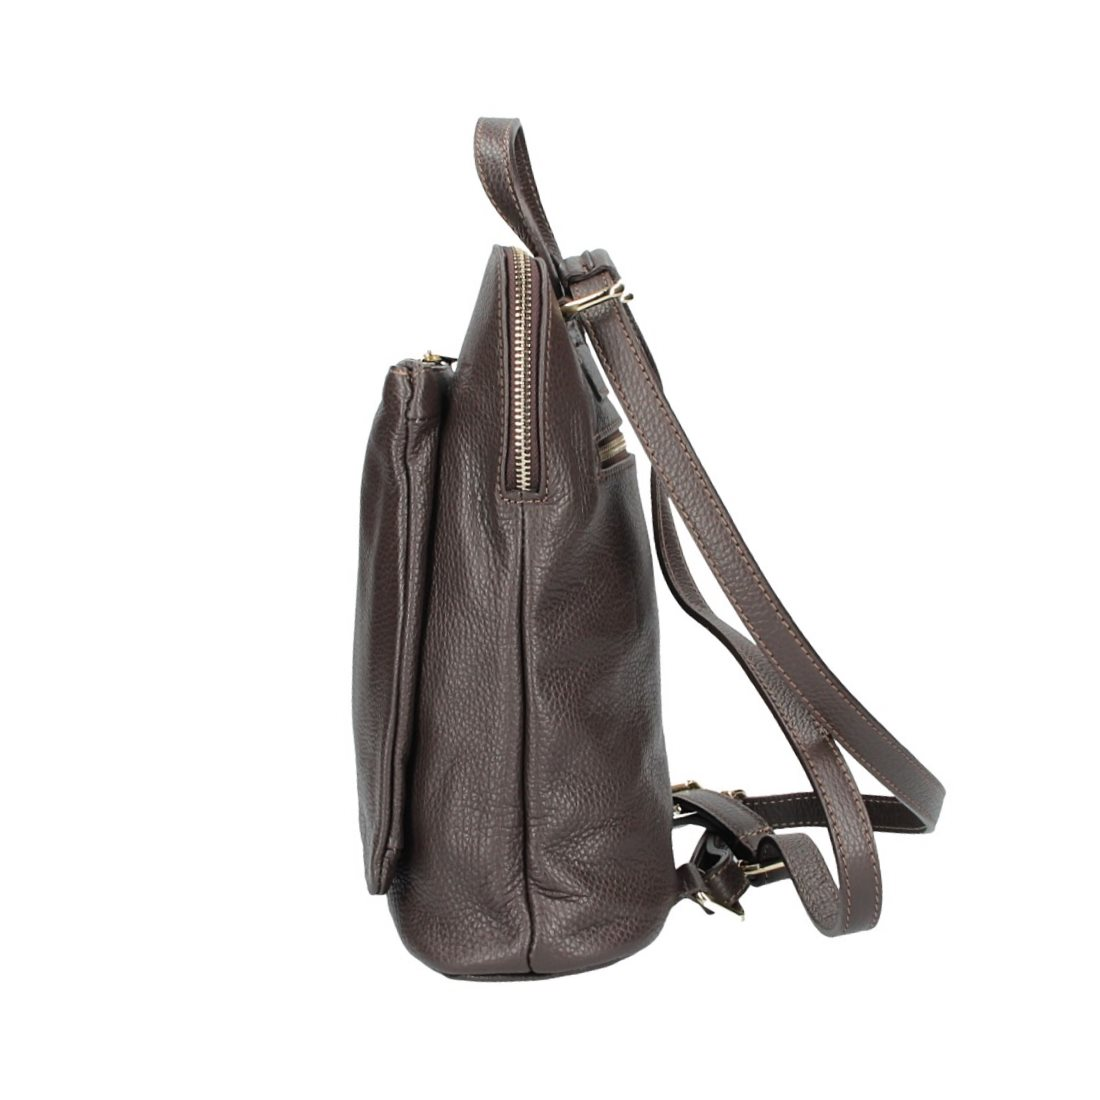 ITALy-DAMEN-LEDER-Reise-RUCKSACK-SchulterTasche-Shopper-Backpack-Ledertasche-BAG Indexbild 92